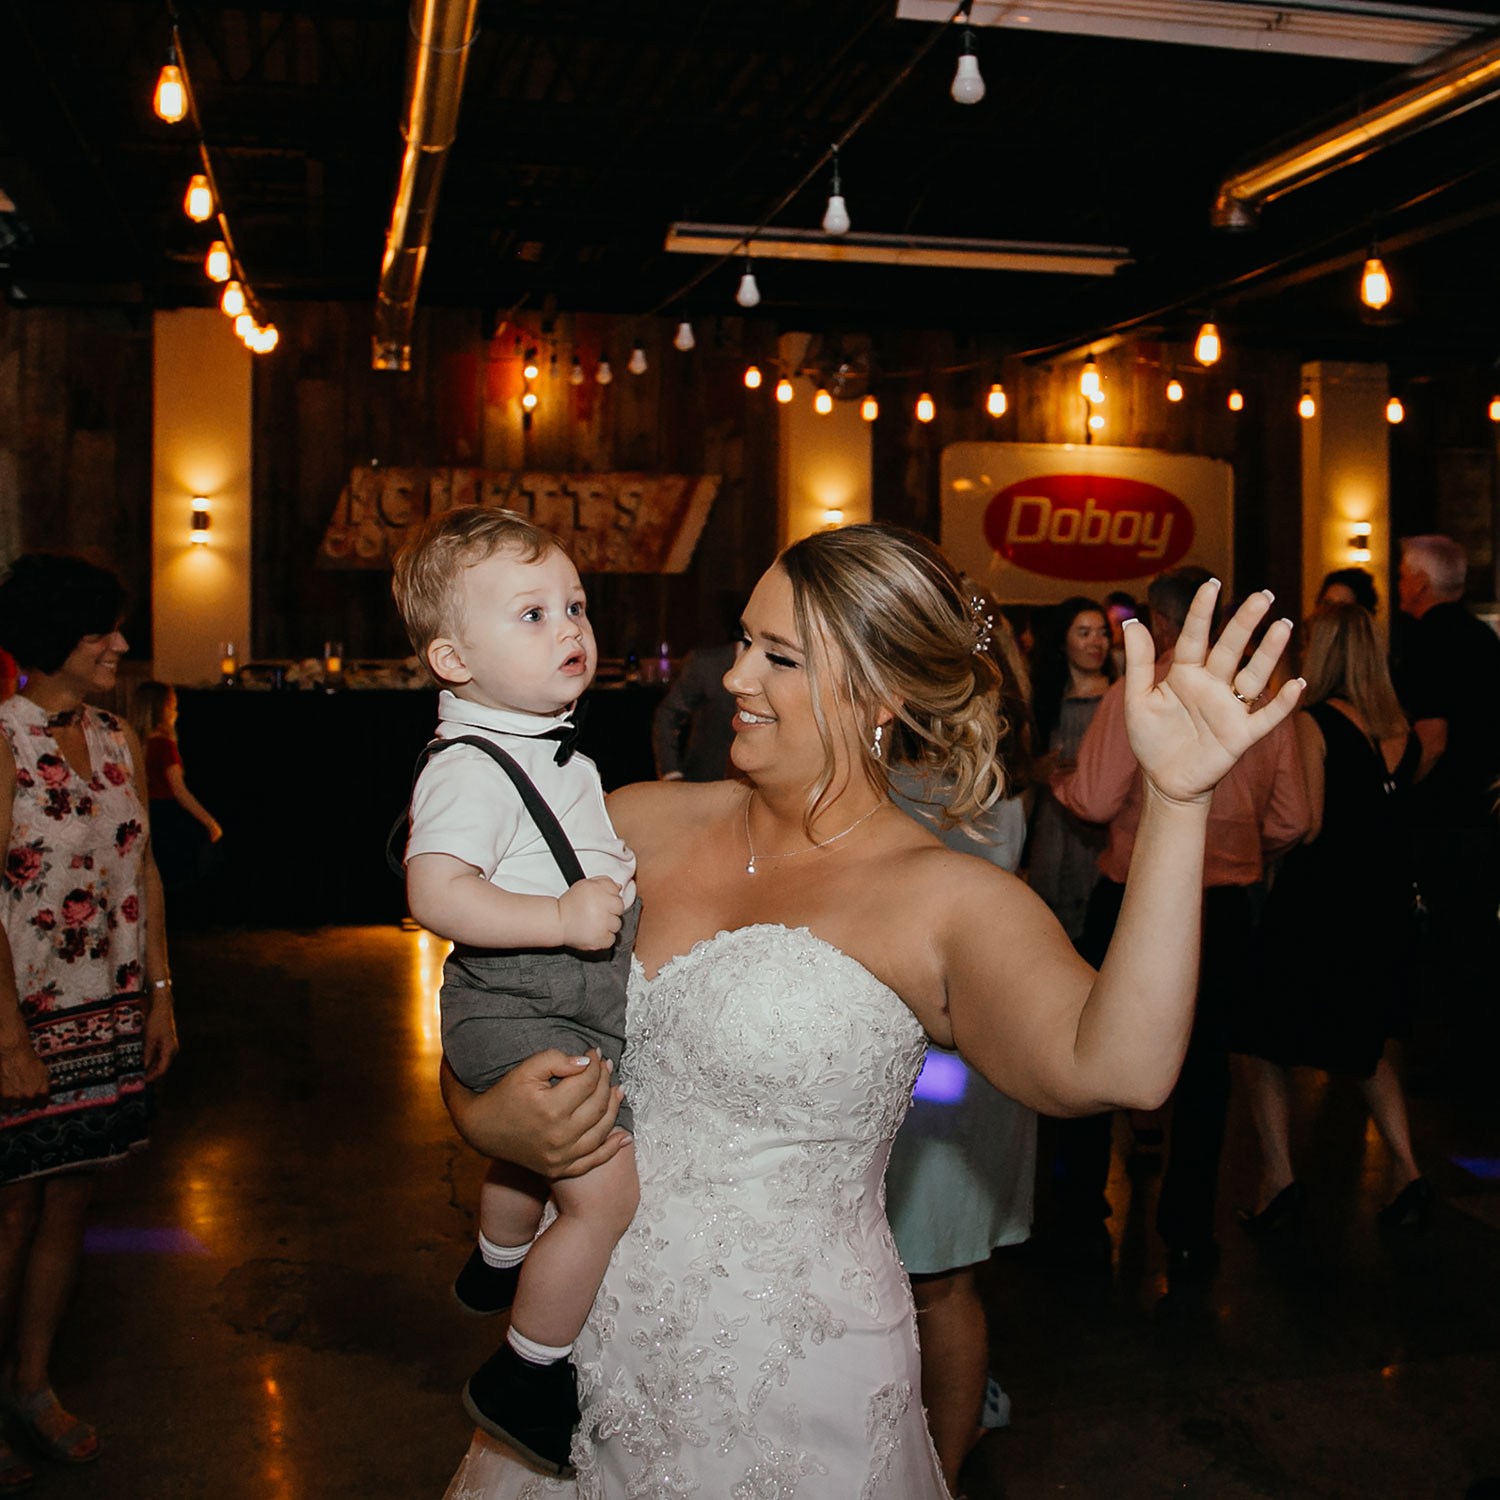 bride-dancing-with-son-decades-event-center-building-desmoines-iowa-raelyn-ramey-photography..jpg